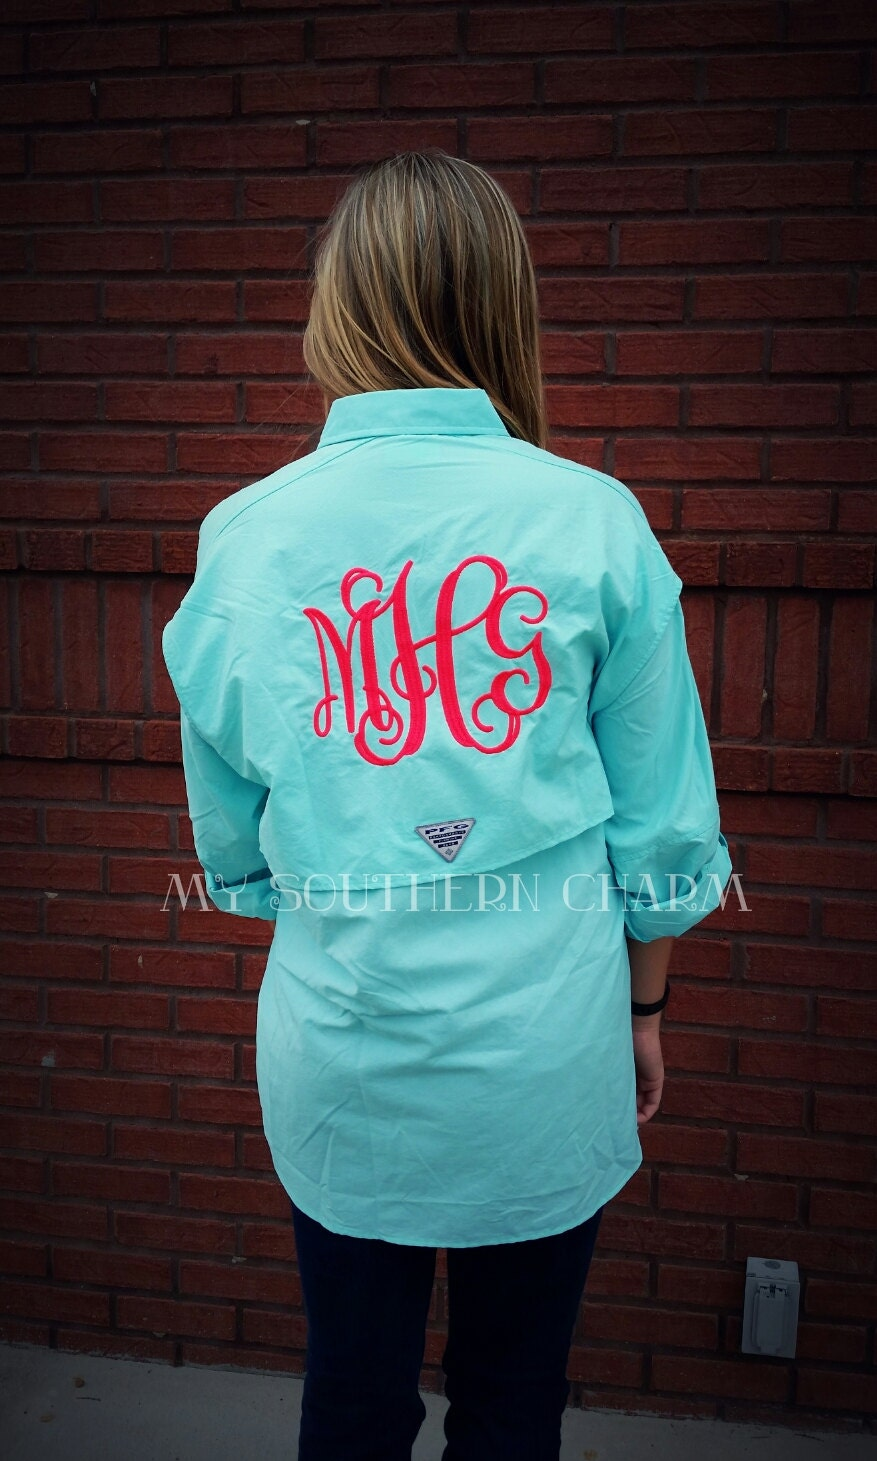 Monogram pfg columbia fishing shirt cover up bathing suit for Columbia shirts womens pfg